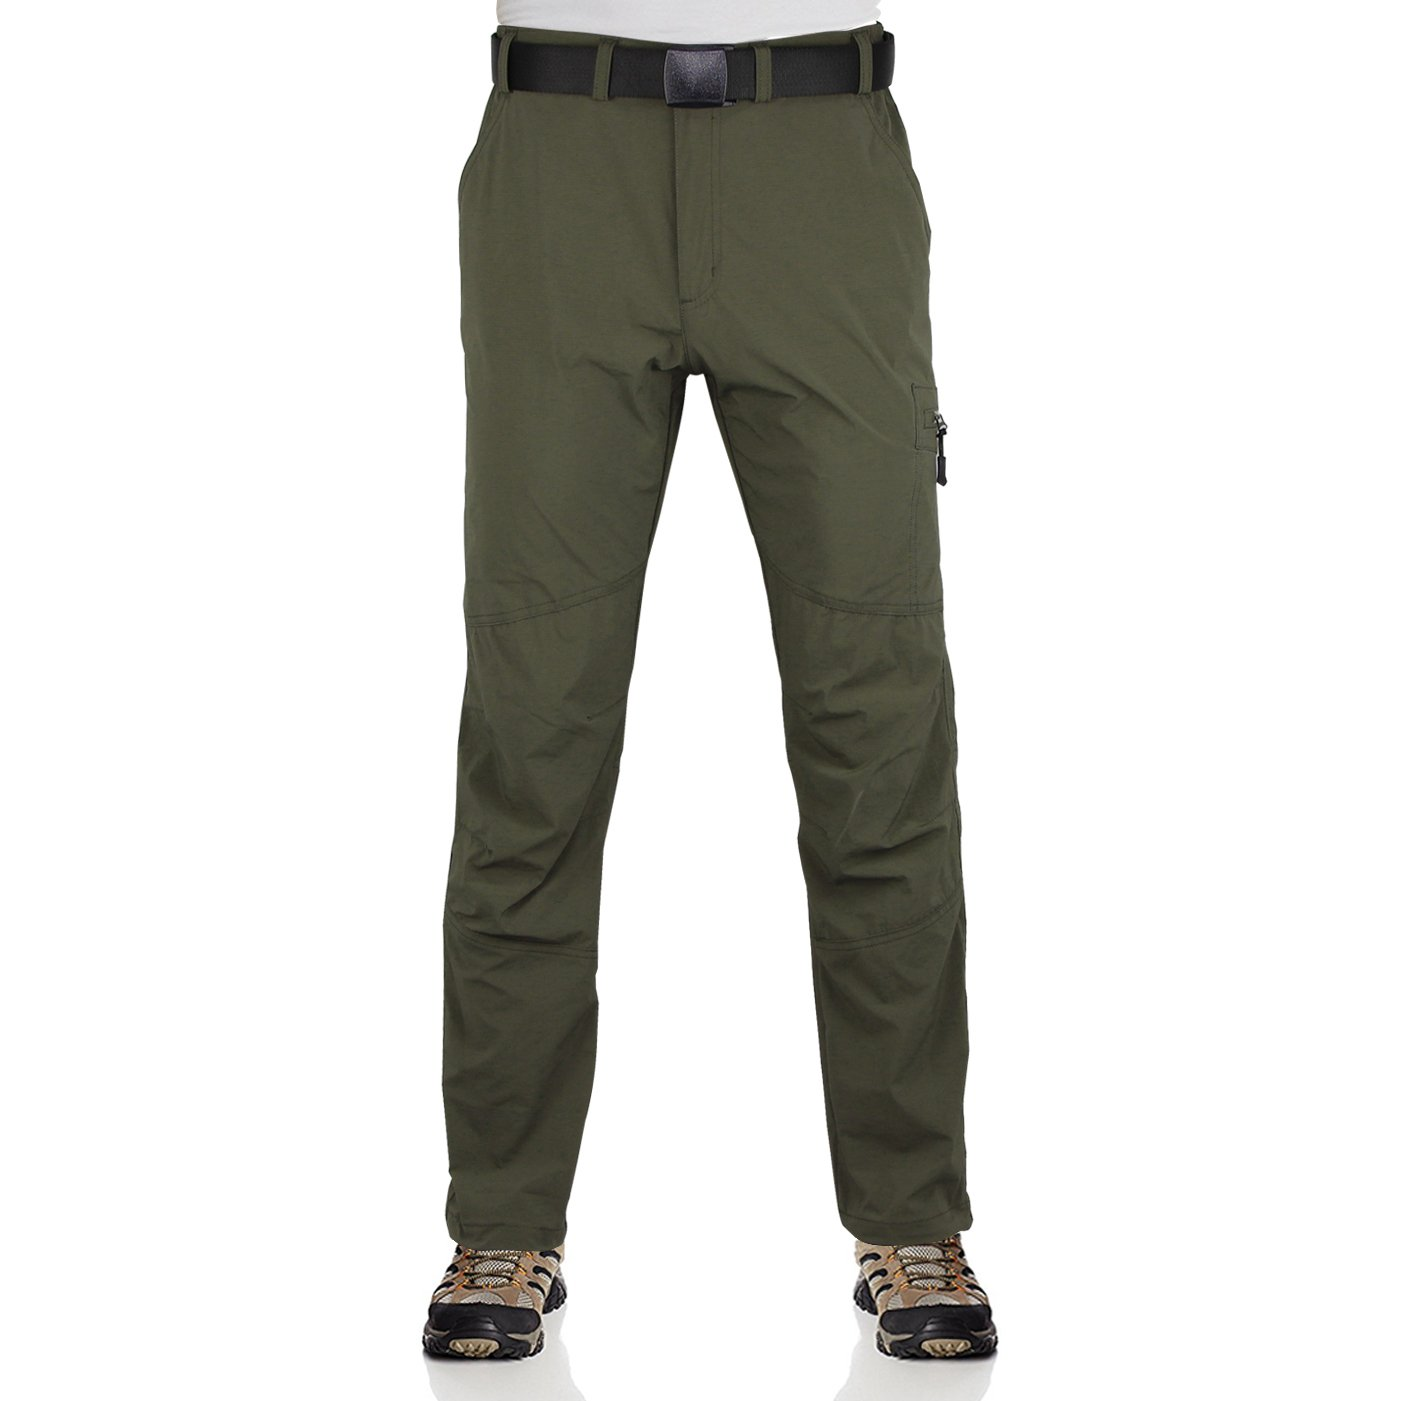 InfinityDry Mens Quick Dry Outdoor Hiking Camping Pants